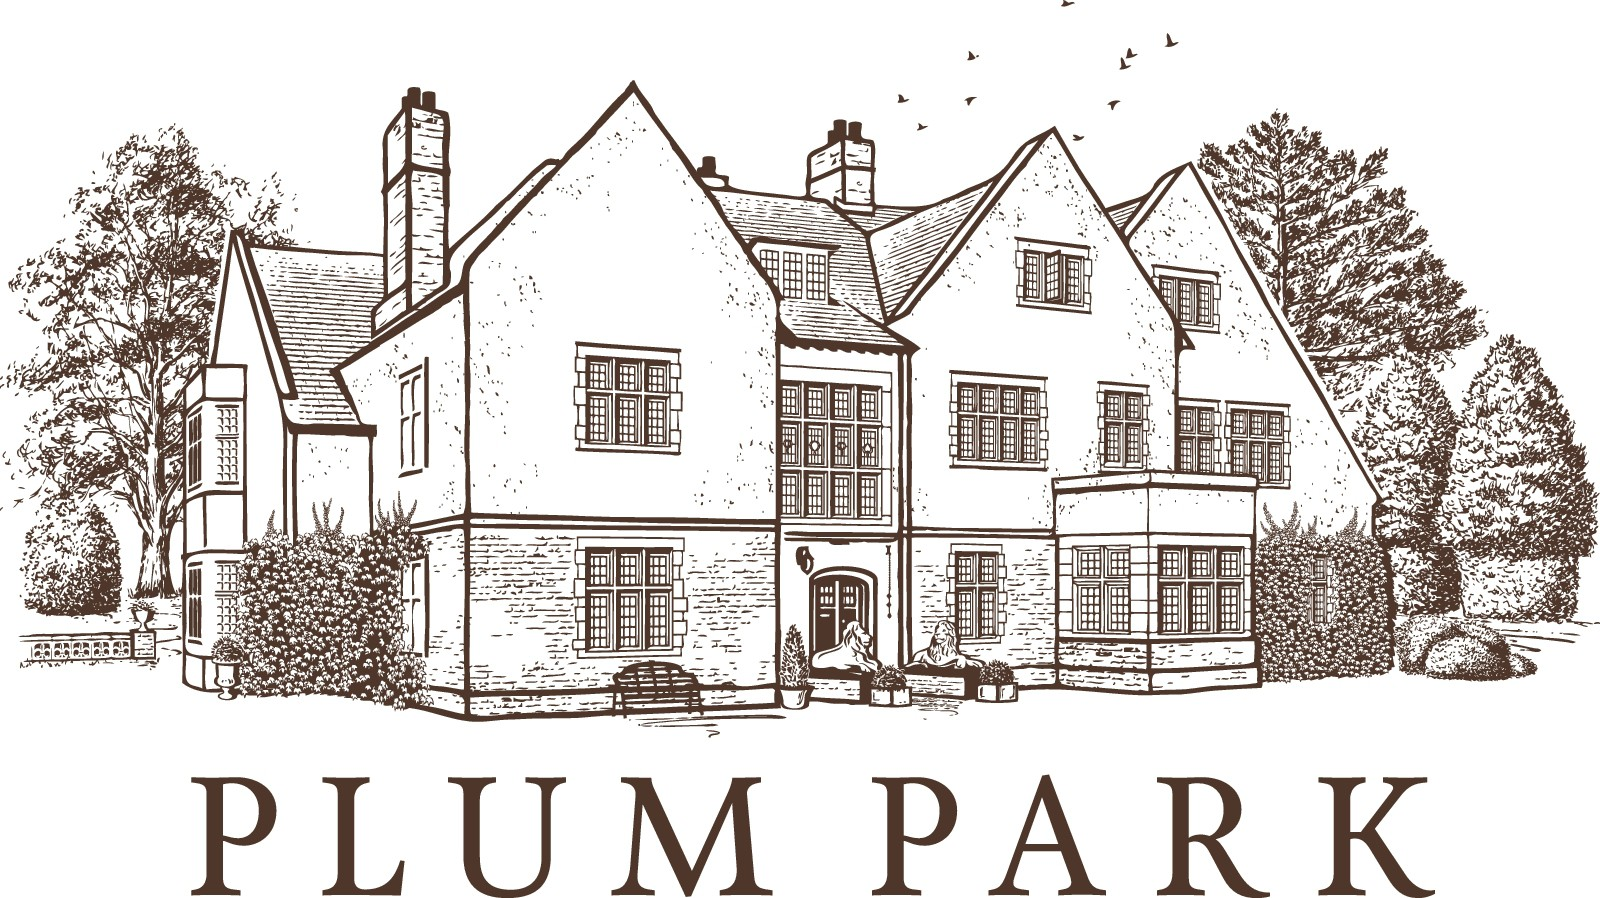 Charming & Sophisticated Logo needed for Plum Park Hotel. We like imperfect, sketched out ideas!